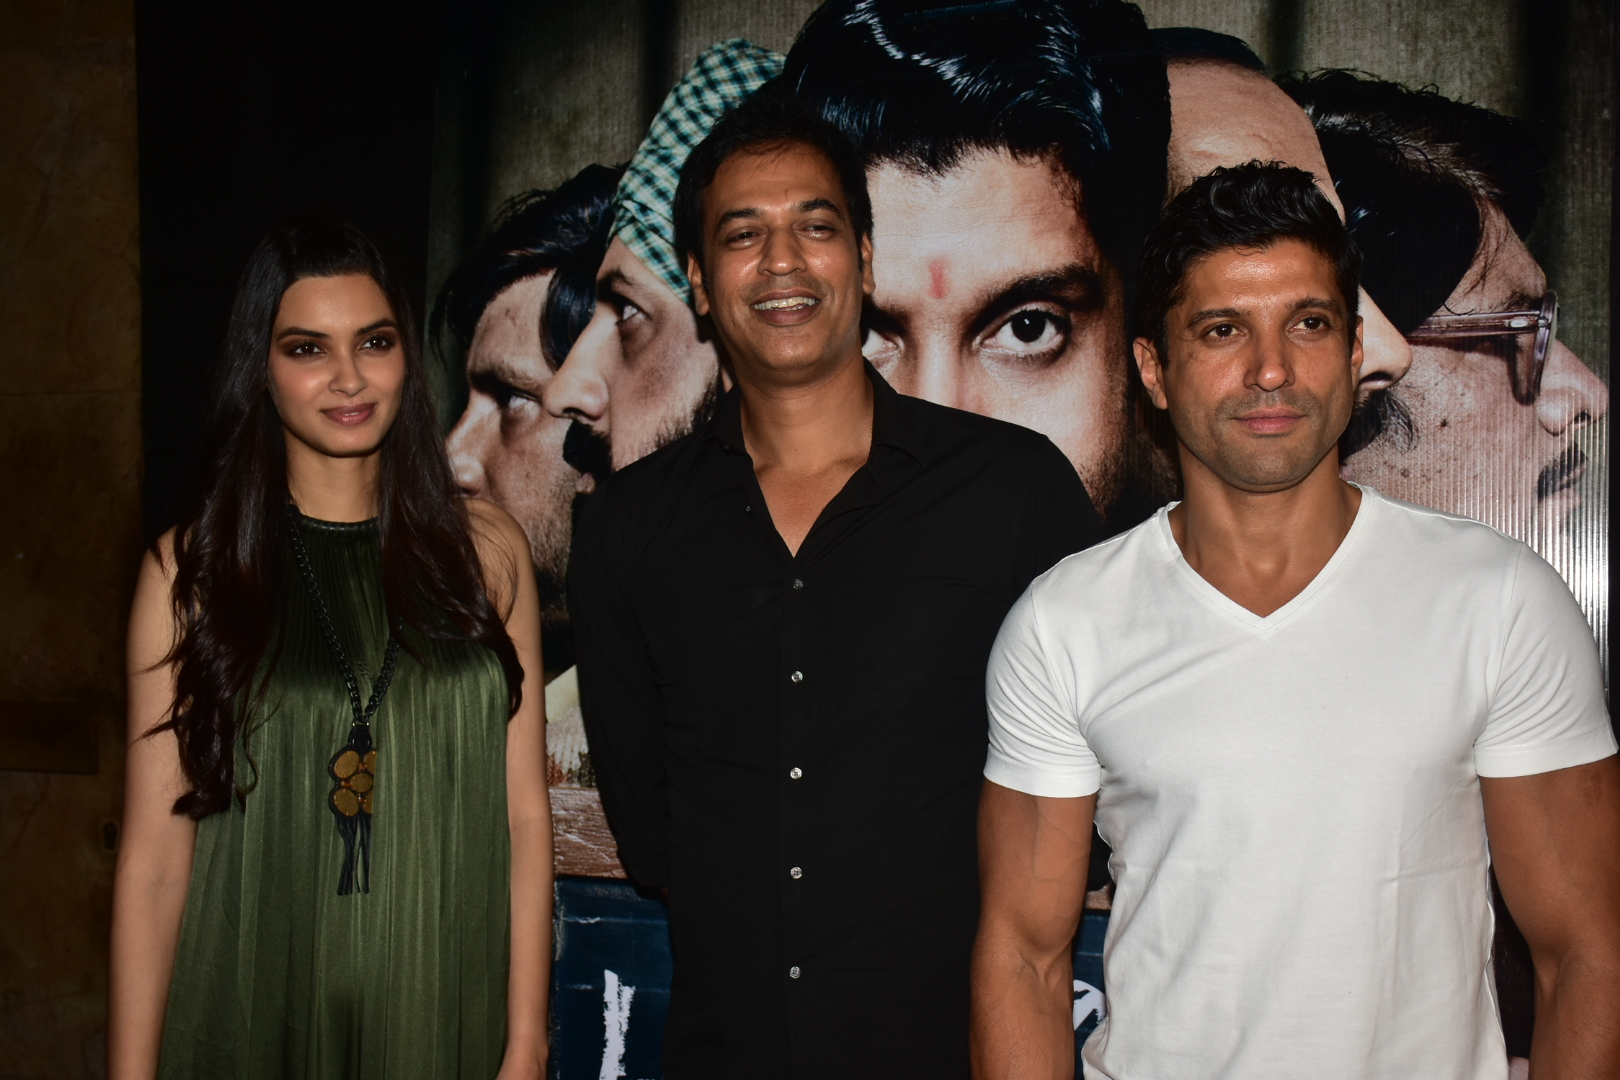 B-town,screening, Lucknow Central, Farhan Akhtar, Diana Penty,